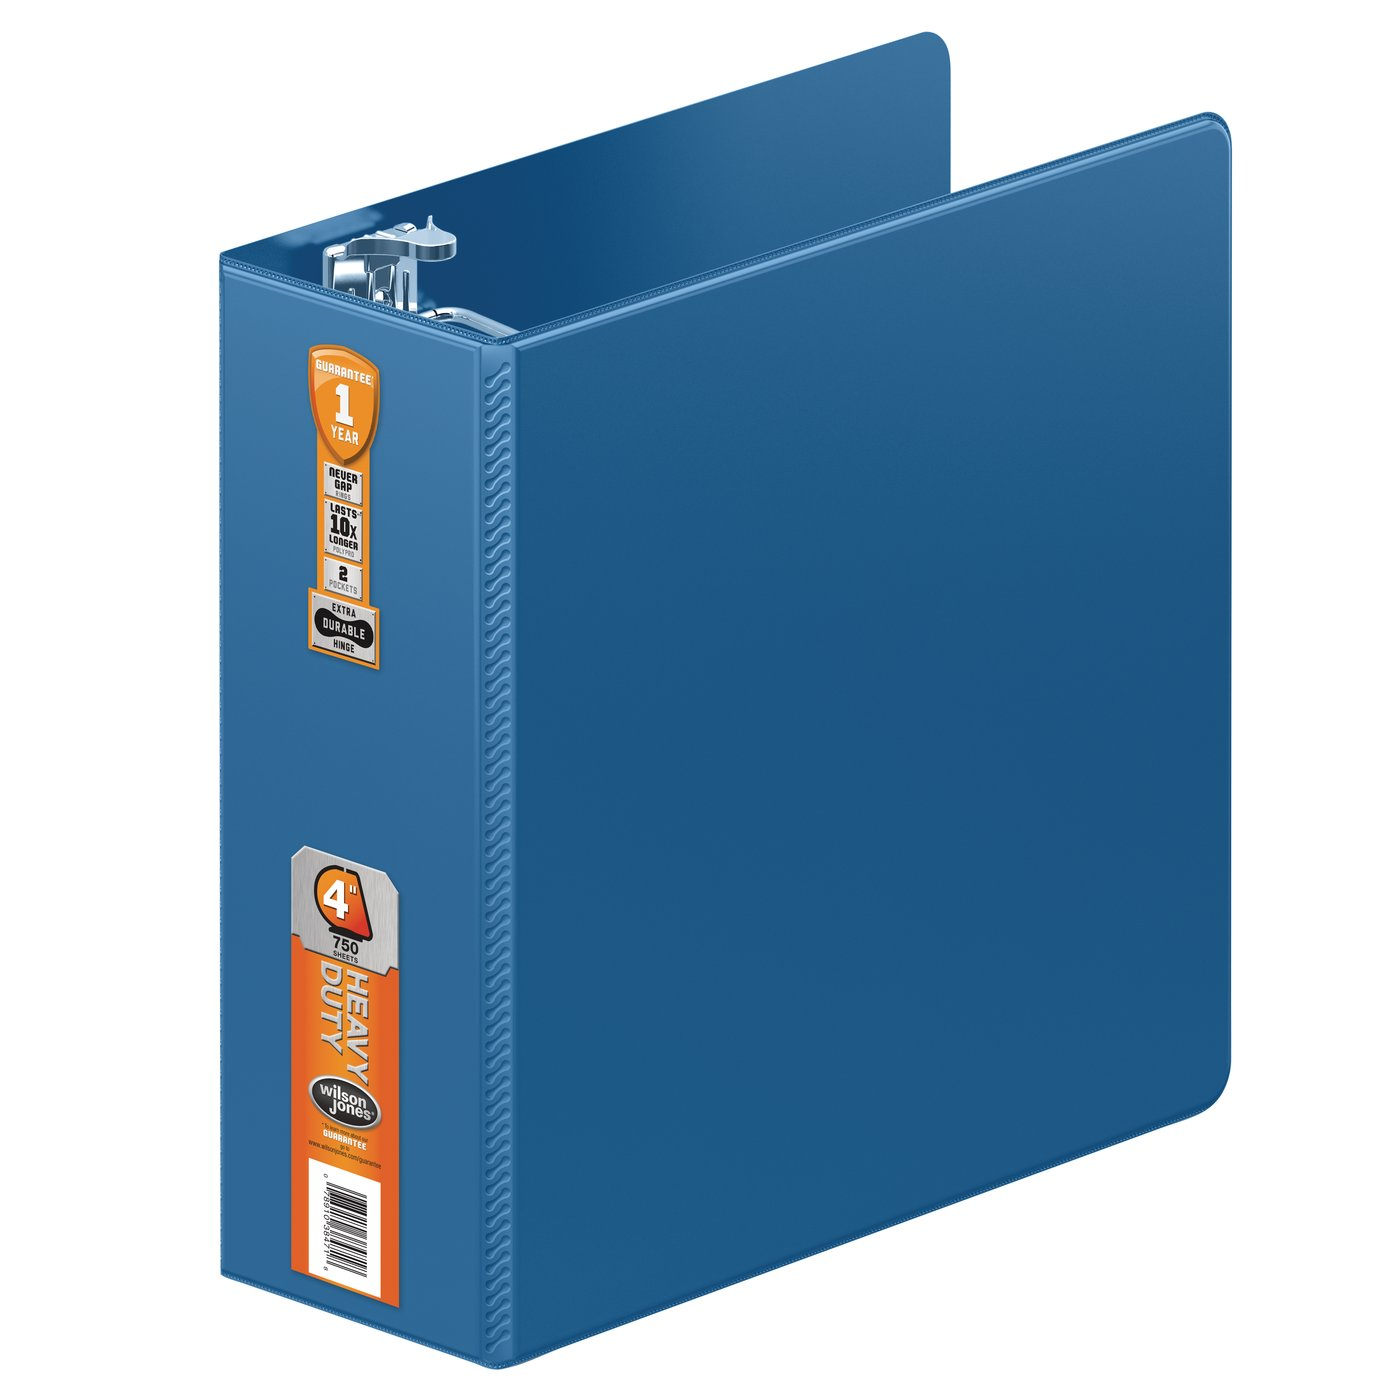 wilson jones binders heavy duty binders wilson jones heavy